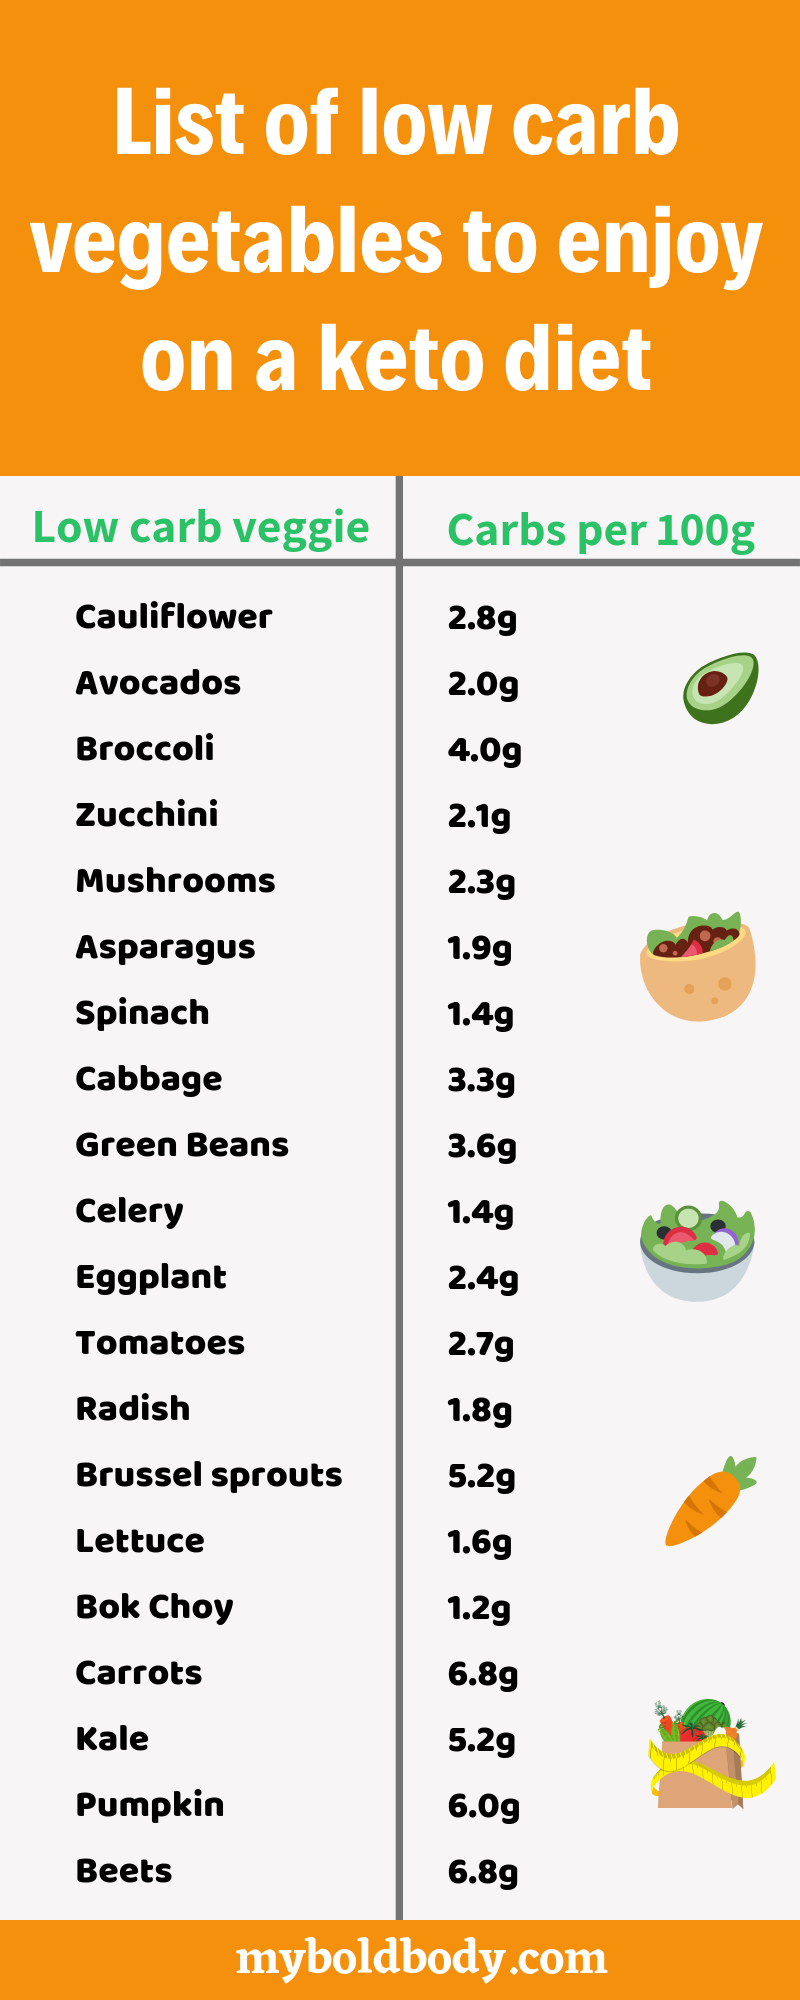 Keto vegetables: The Best Low Carb Veggies To Enjoy On a Keto Diet #ketodietforbeginners